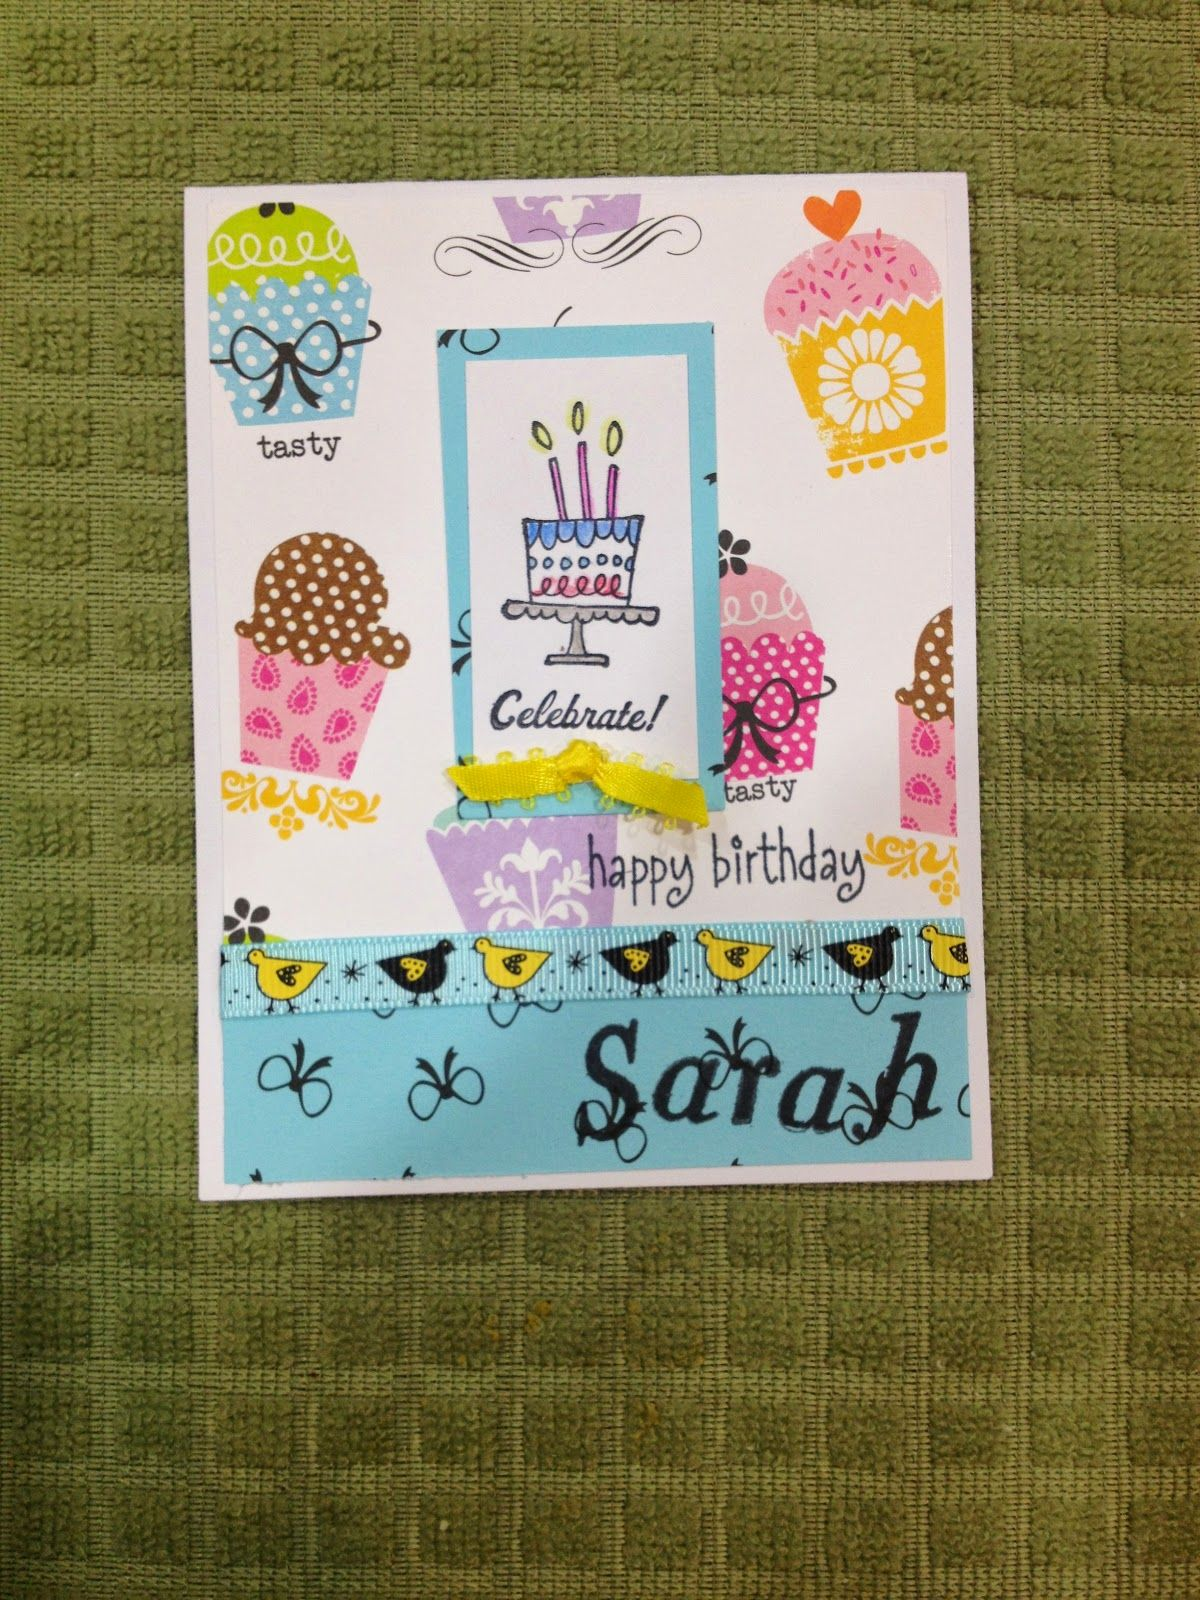 Cute Little Birthday Card For A Special 14 Year Old Girl Love The Way It Turned Out I Have To Make Another